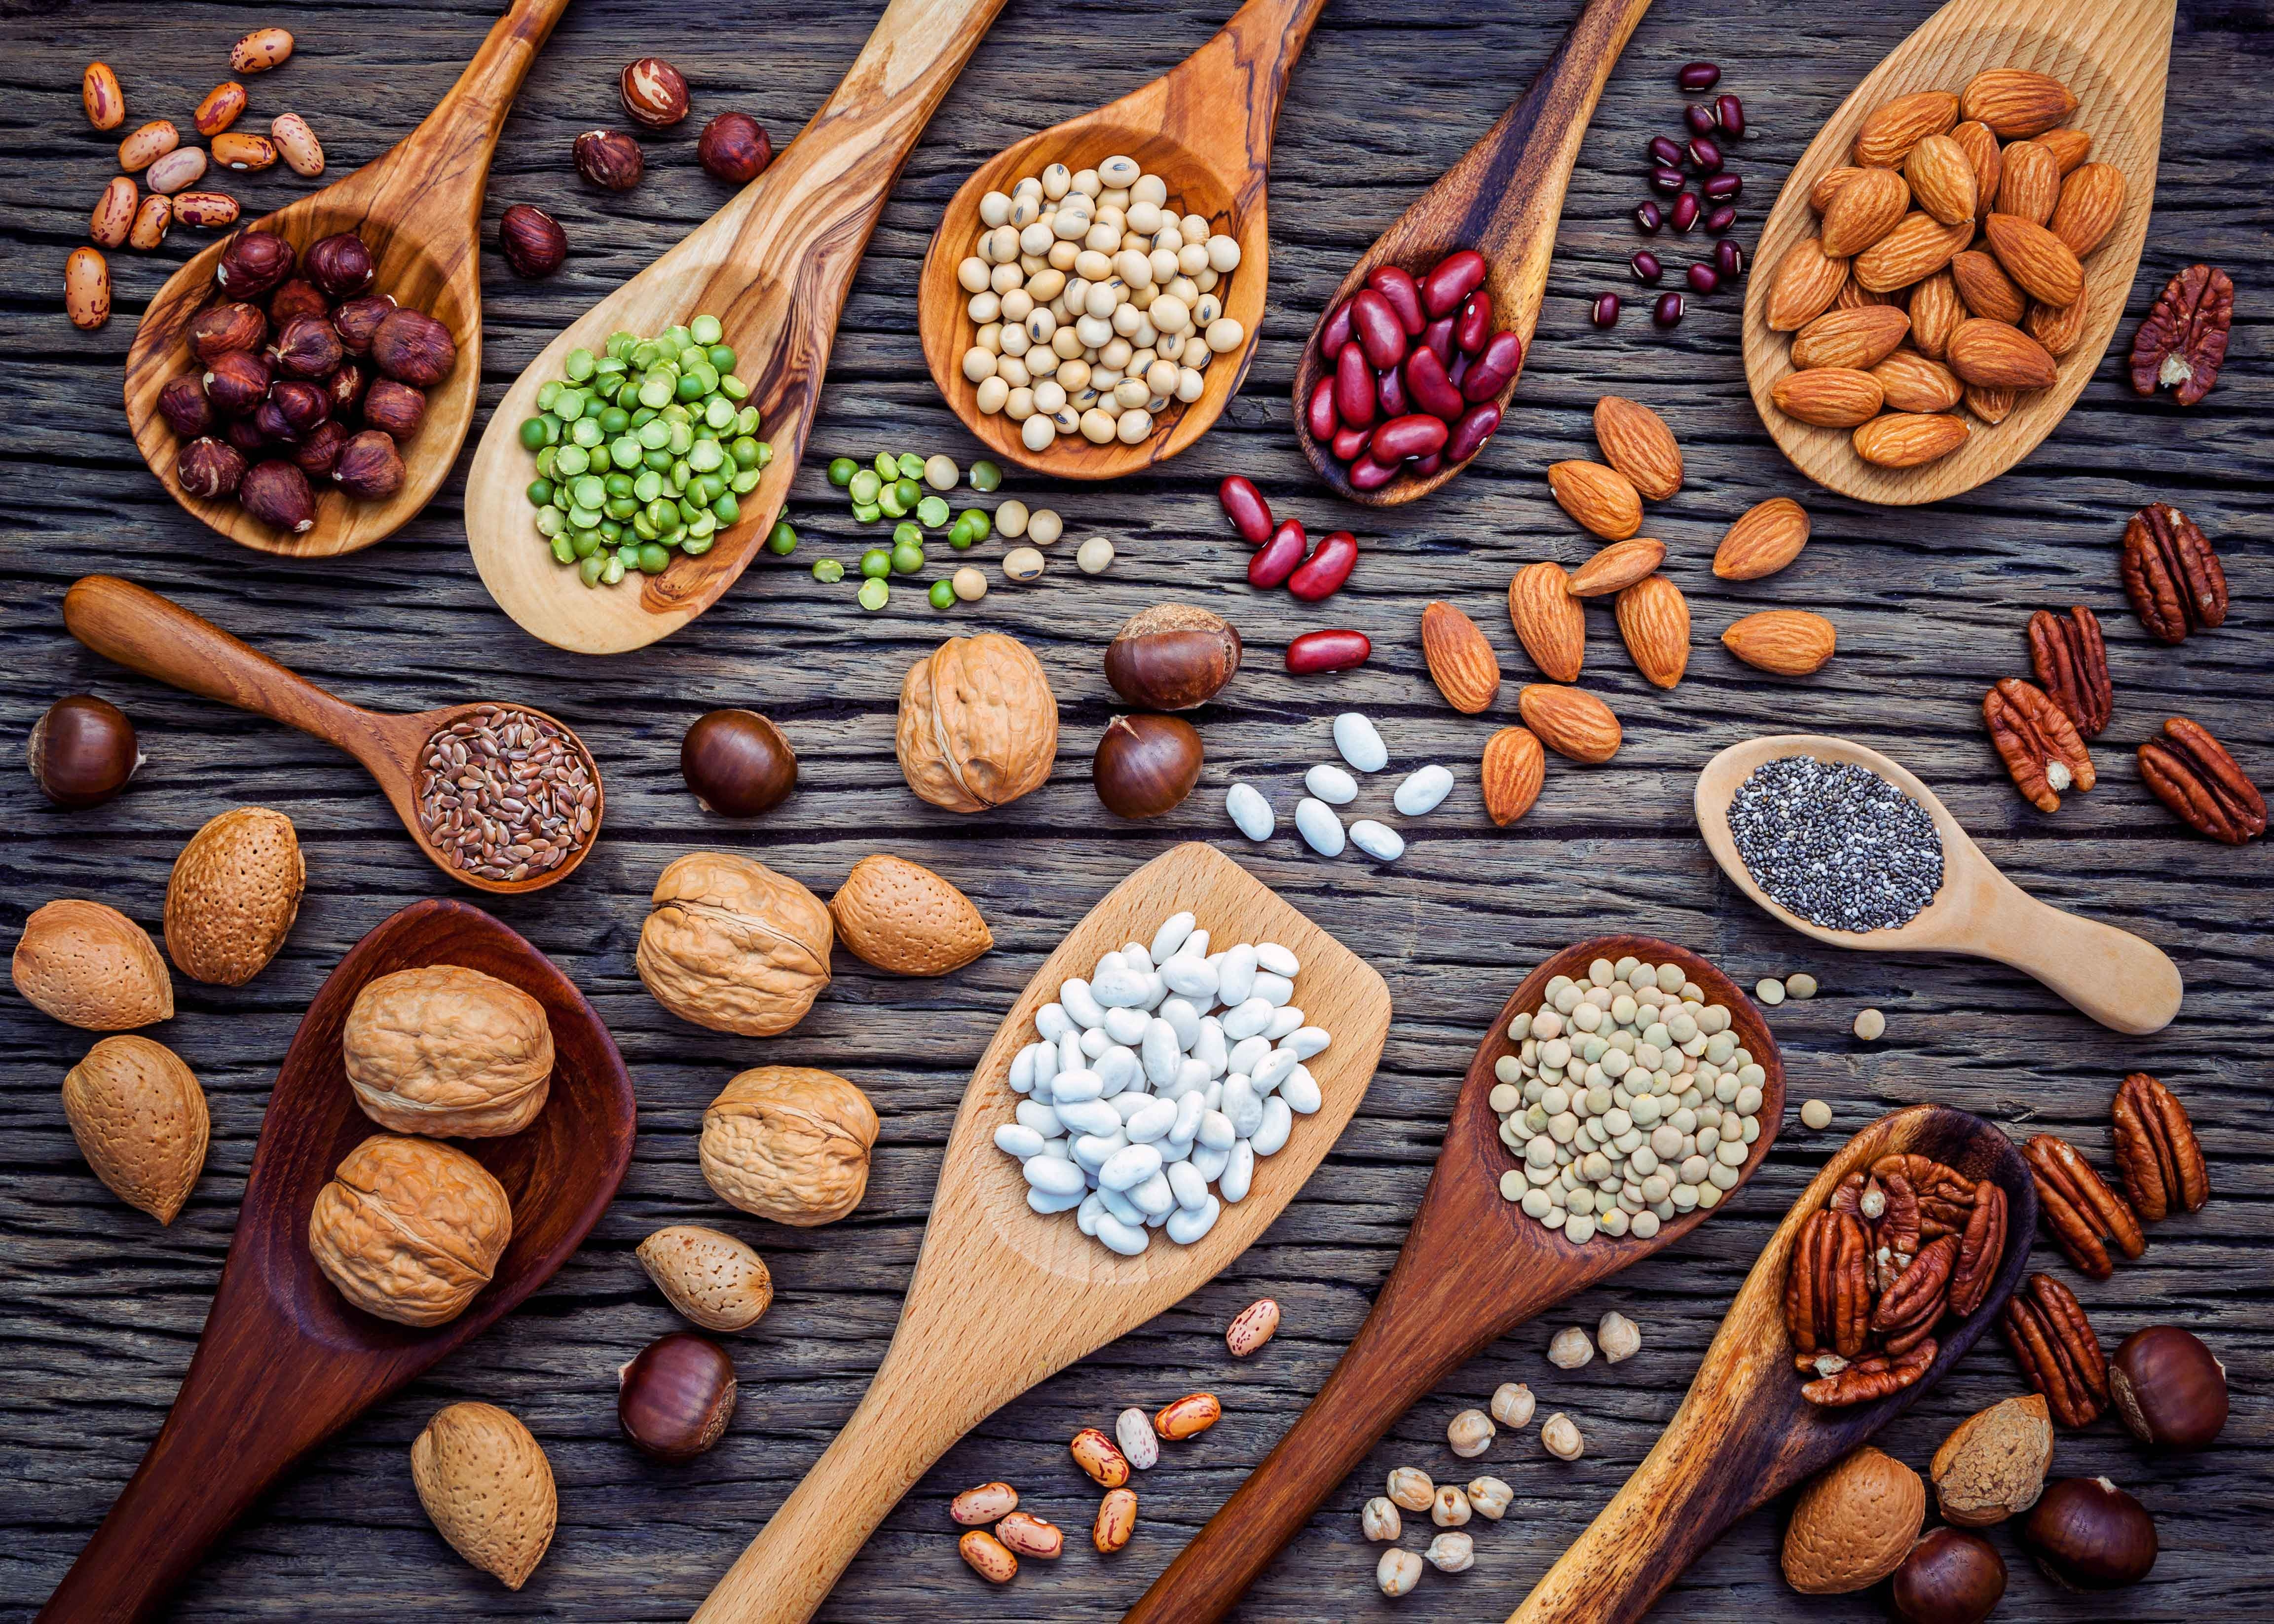 Wooden spoons filled with a variety of seeds and nuts rich in  omega 3 6 9 fatty acids